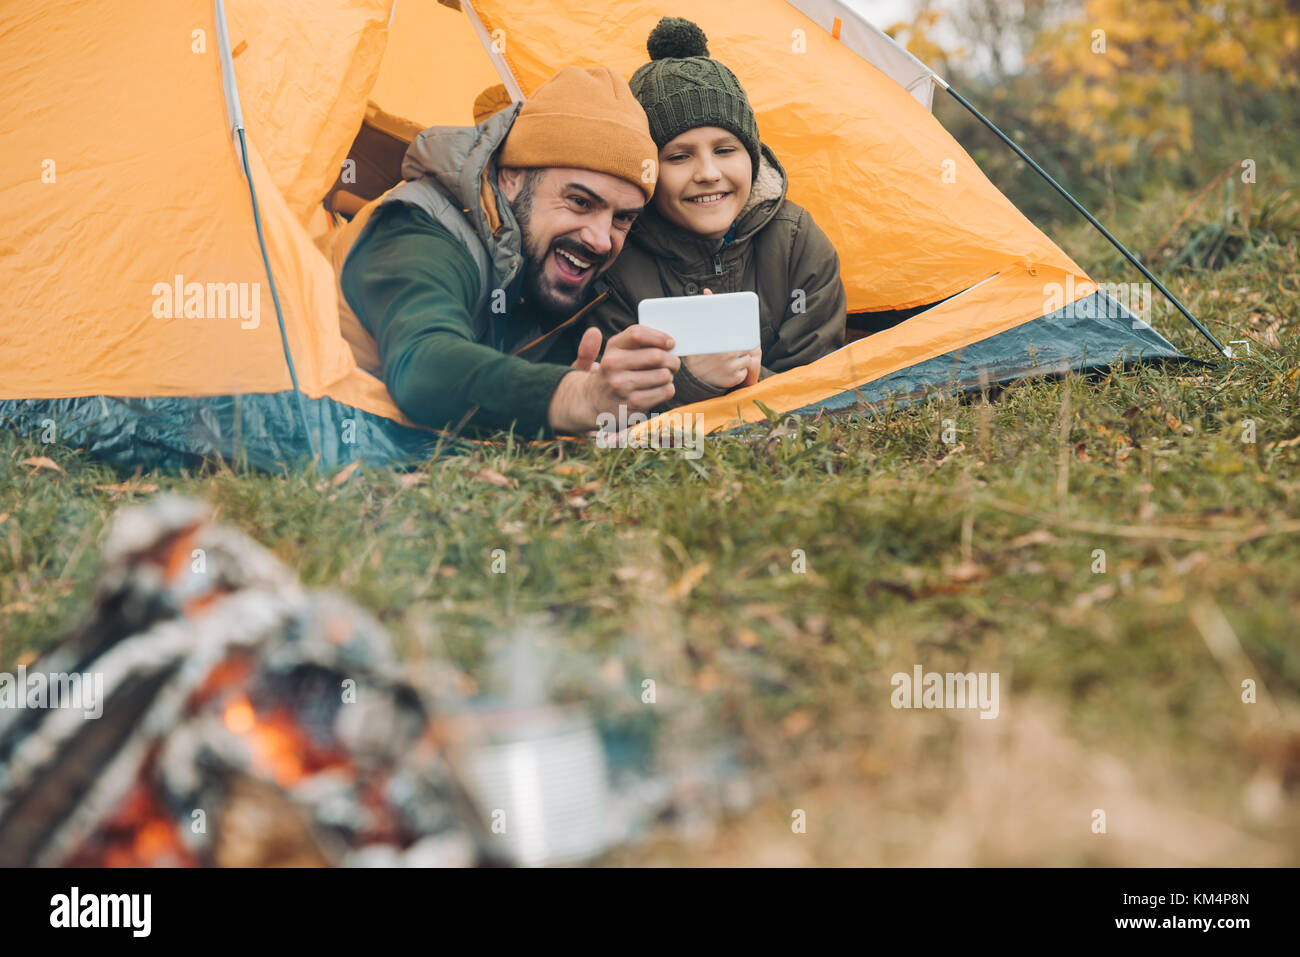 Father and son taking selfie with smartphone - Stock Image